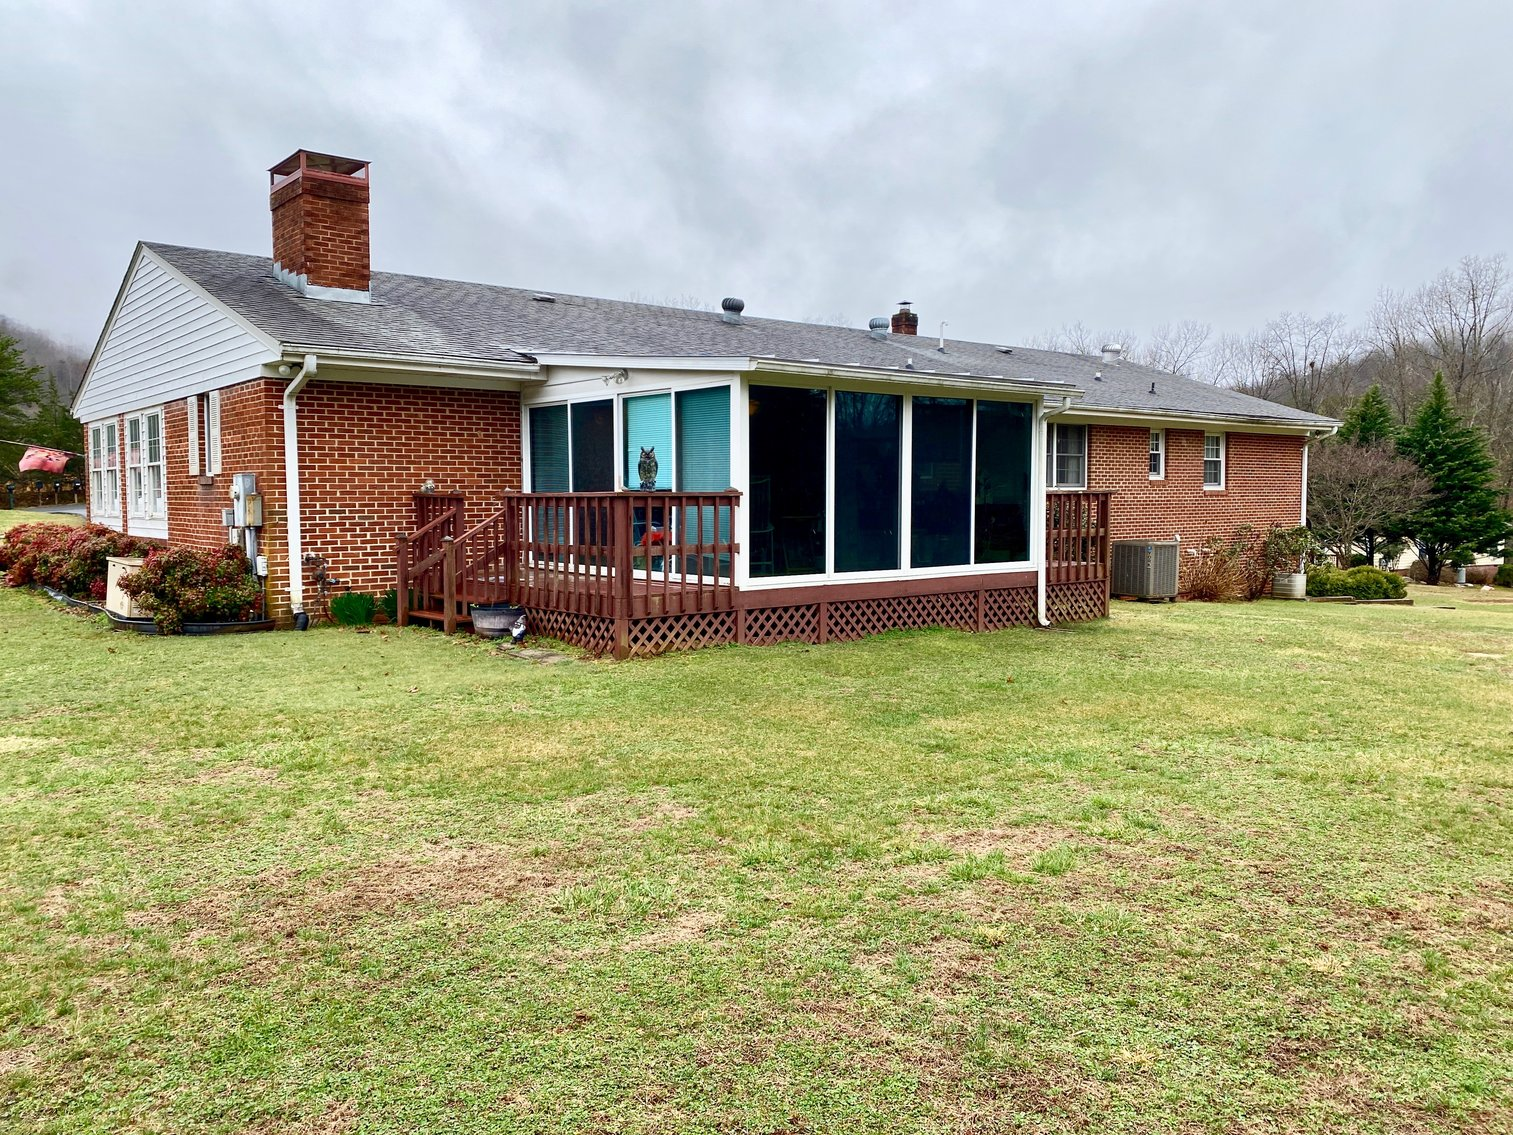 Image for 3 BR/3 BA Brick Home on 2 +/-  Acres w/Detached Garage/Work Shop in Nelson County, VA